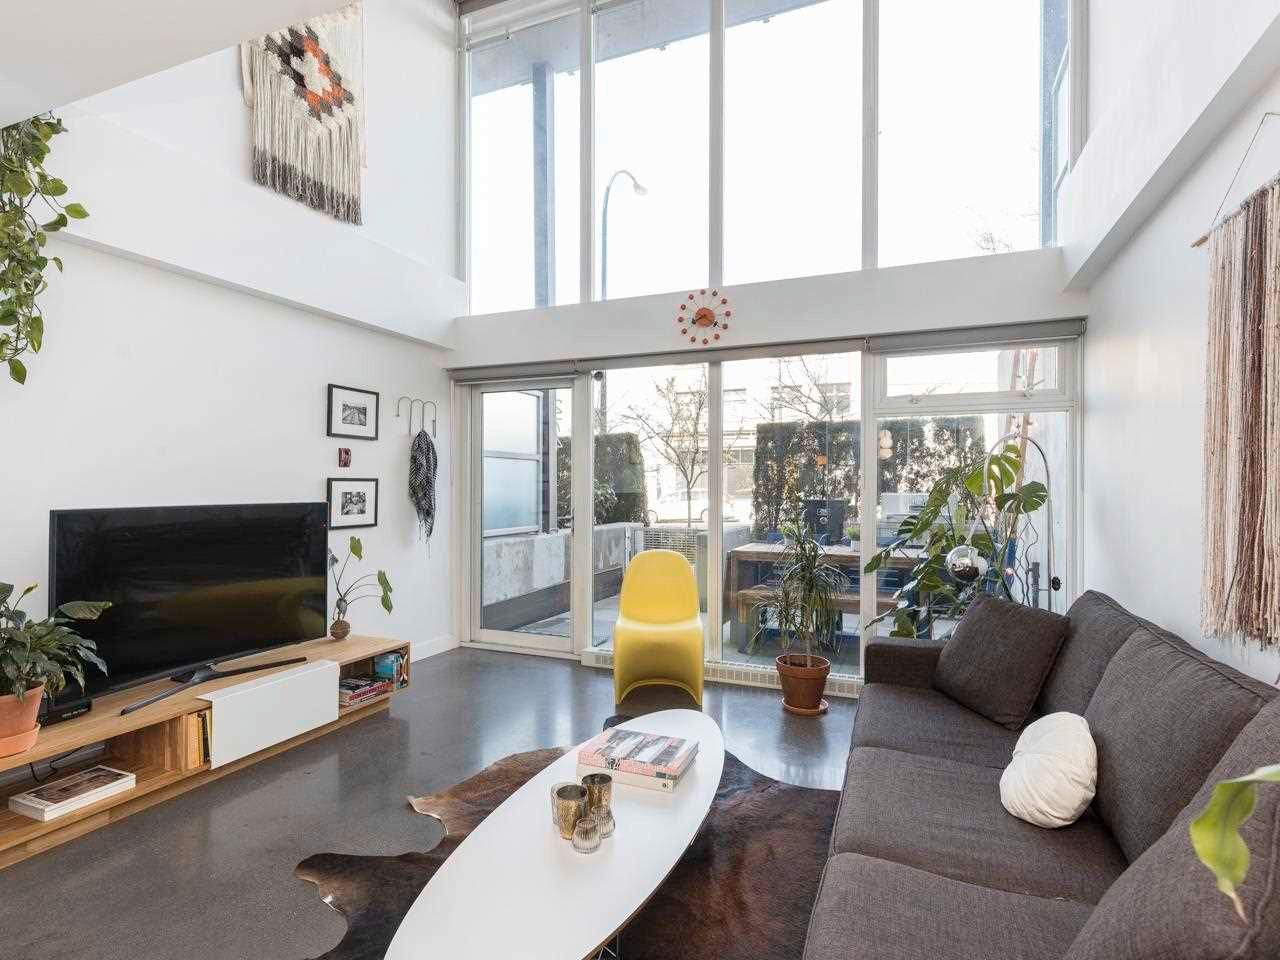 """Main Photo: 274 E 2ND Avenue in Vancouver: Mount Pleasant VE Townhouse for sale in """"JACOBSEN"""" (Vancouver East)  : MLS®# R2572730"""